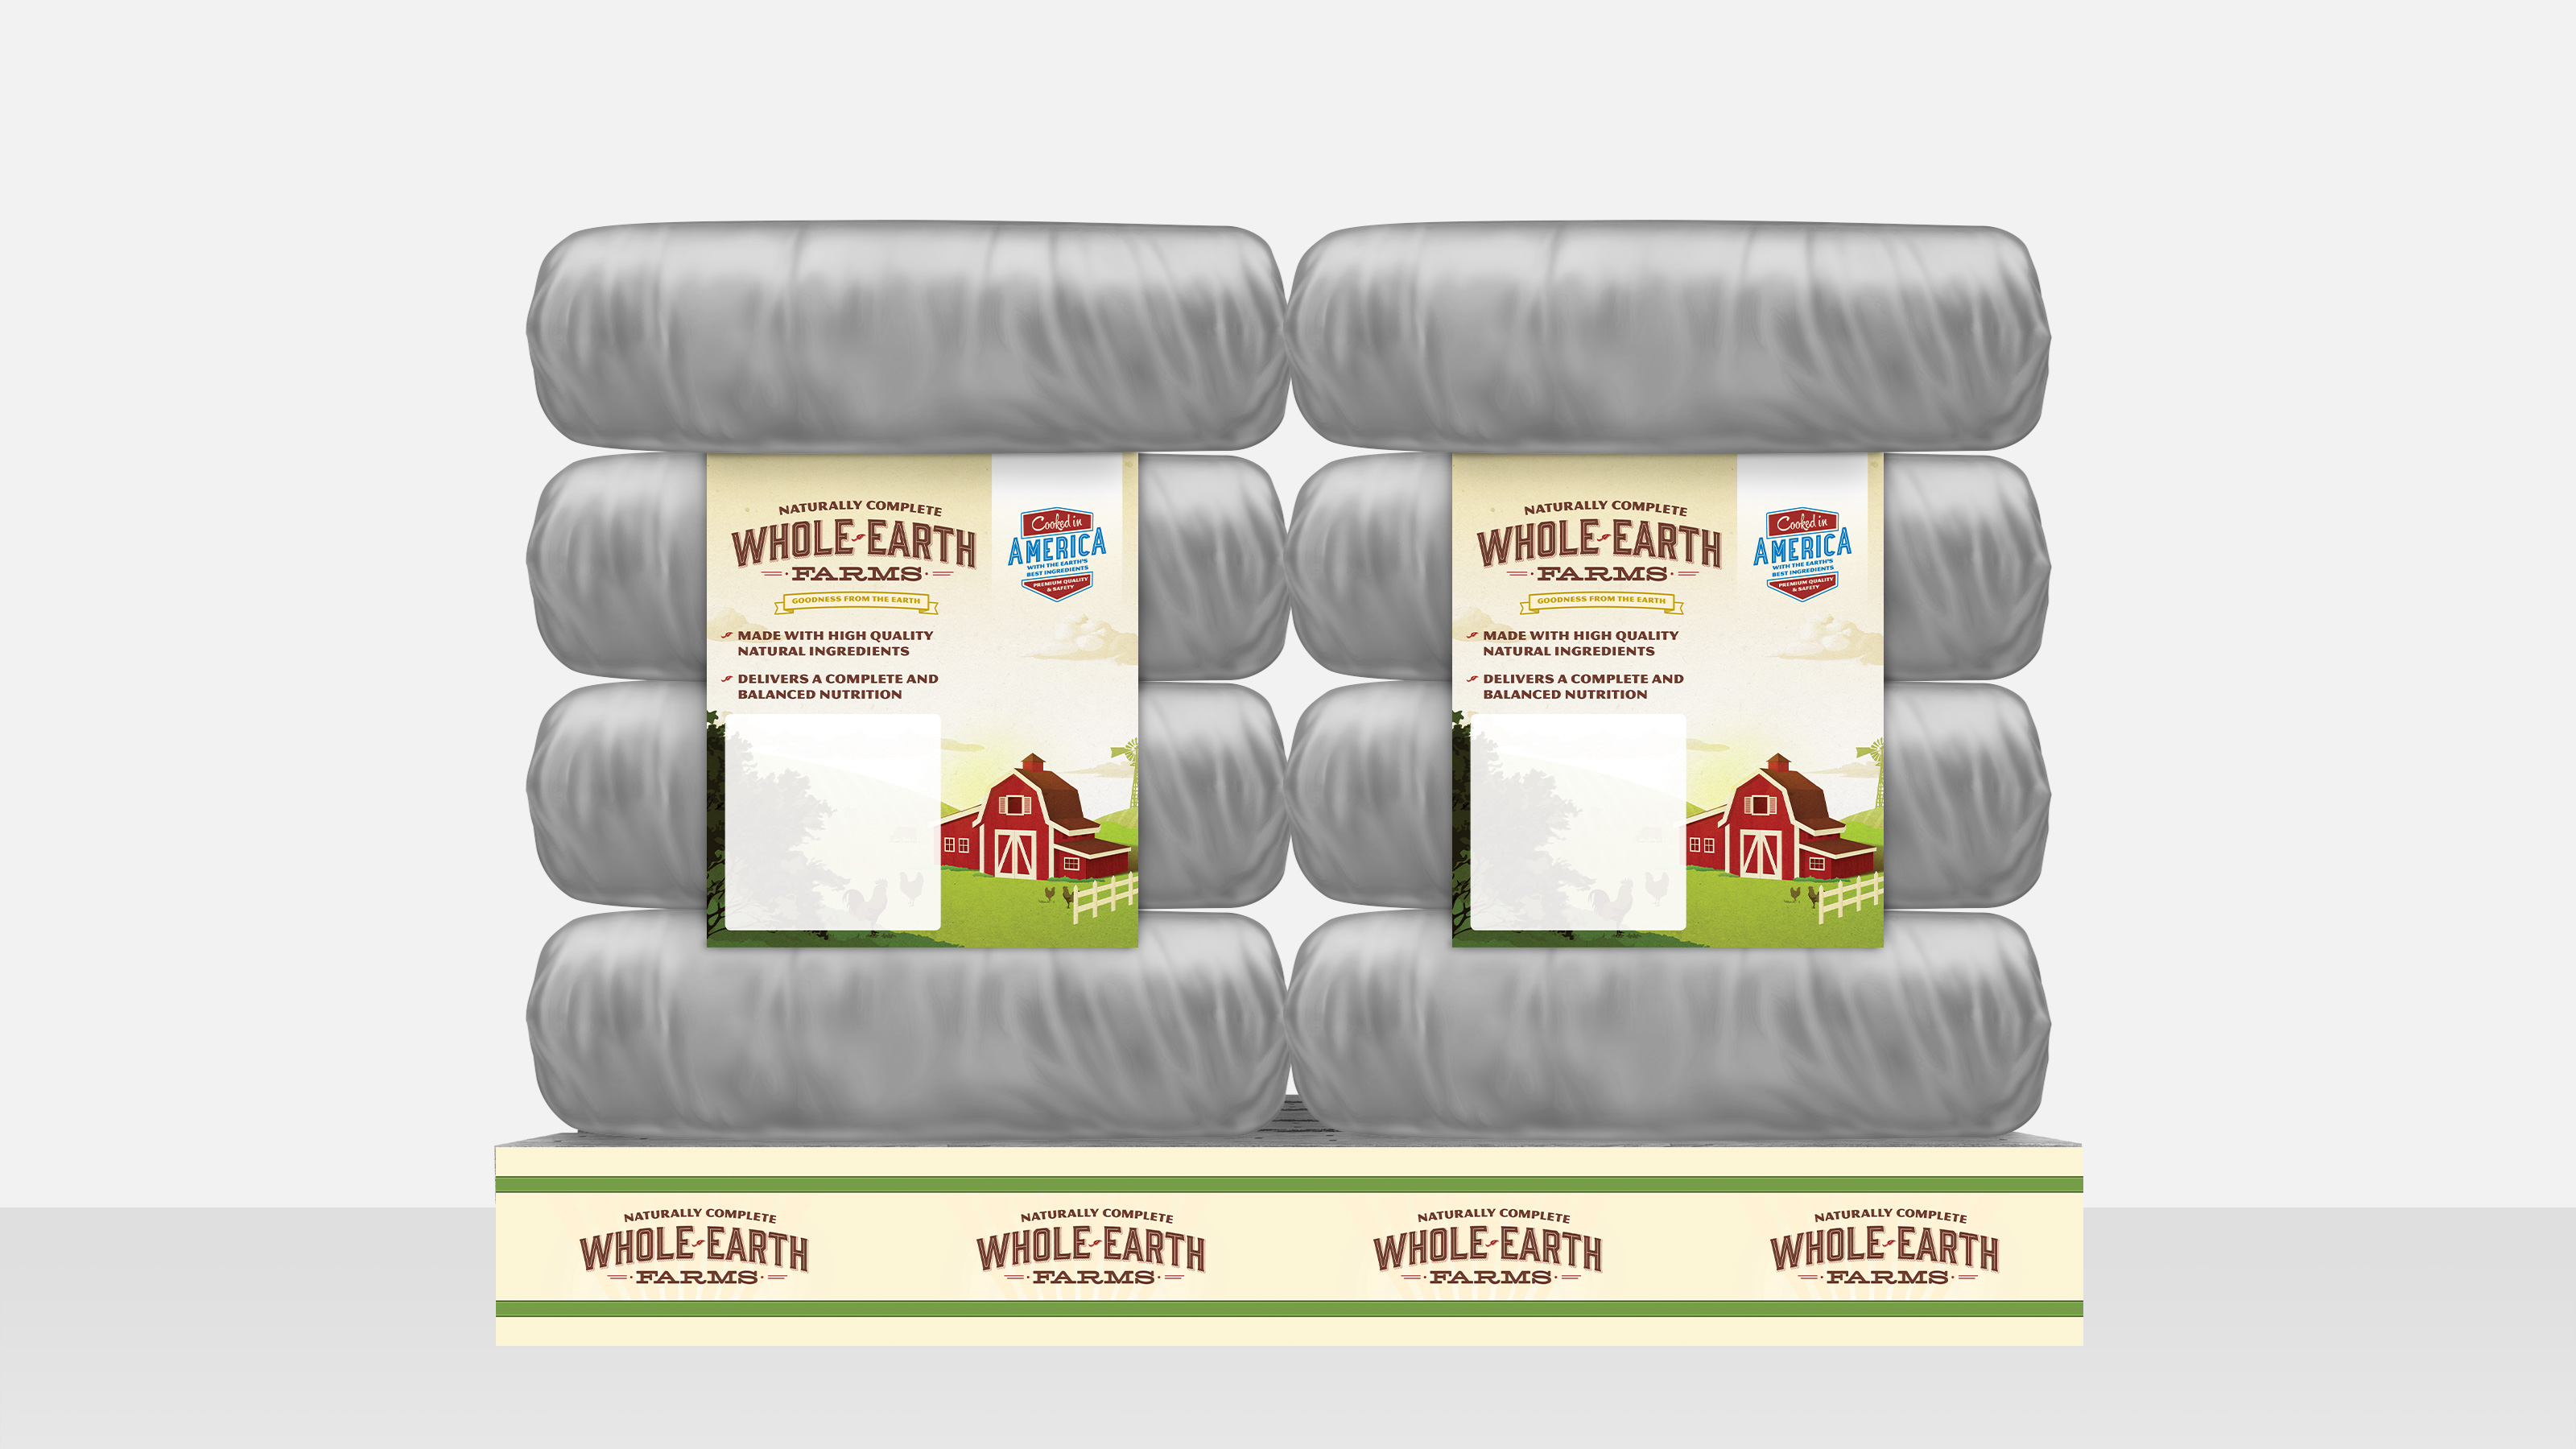 Whole earth farms point of purchase ad on pallet